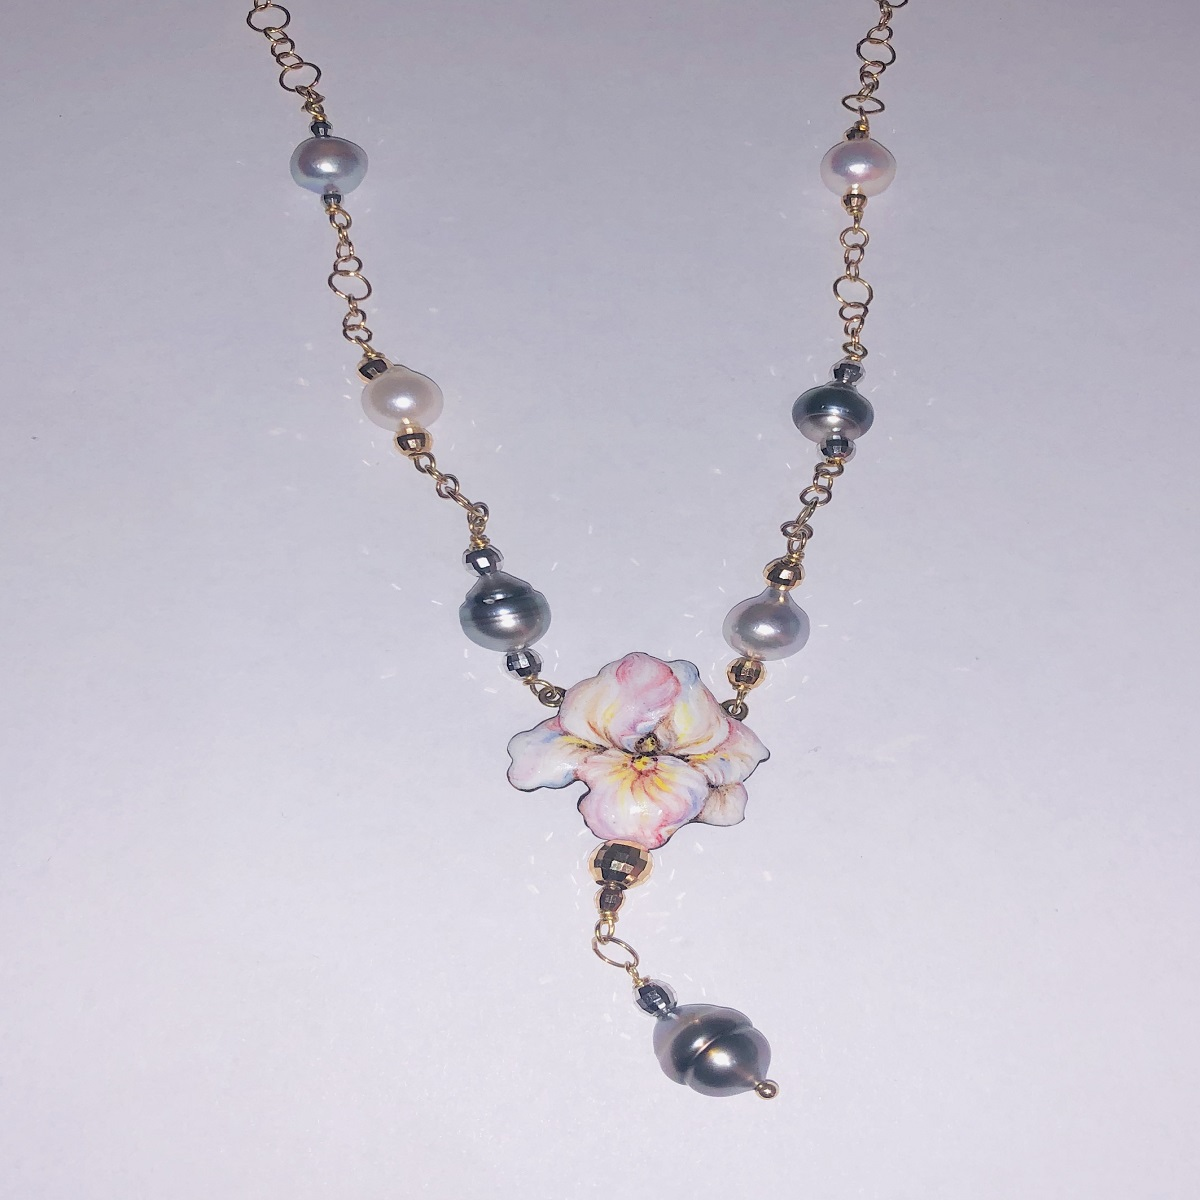 Gabriella Rivalta NECKLACE YELLOW GOLD WITH PINK AND WHITE PEARLS AND GREY GFR/IRIS